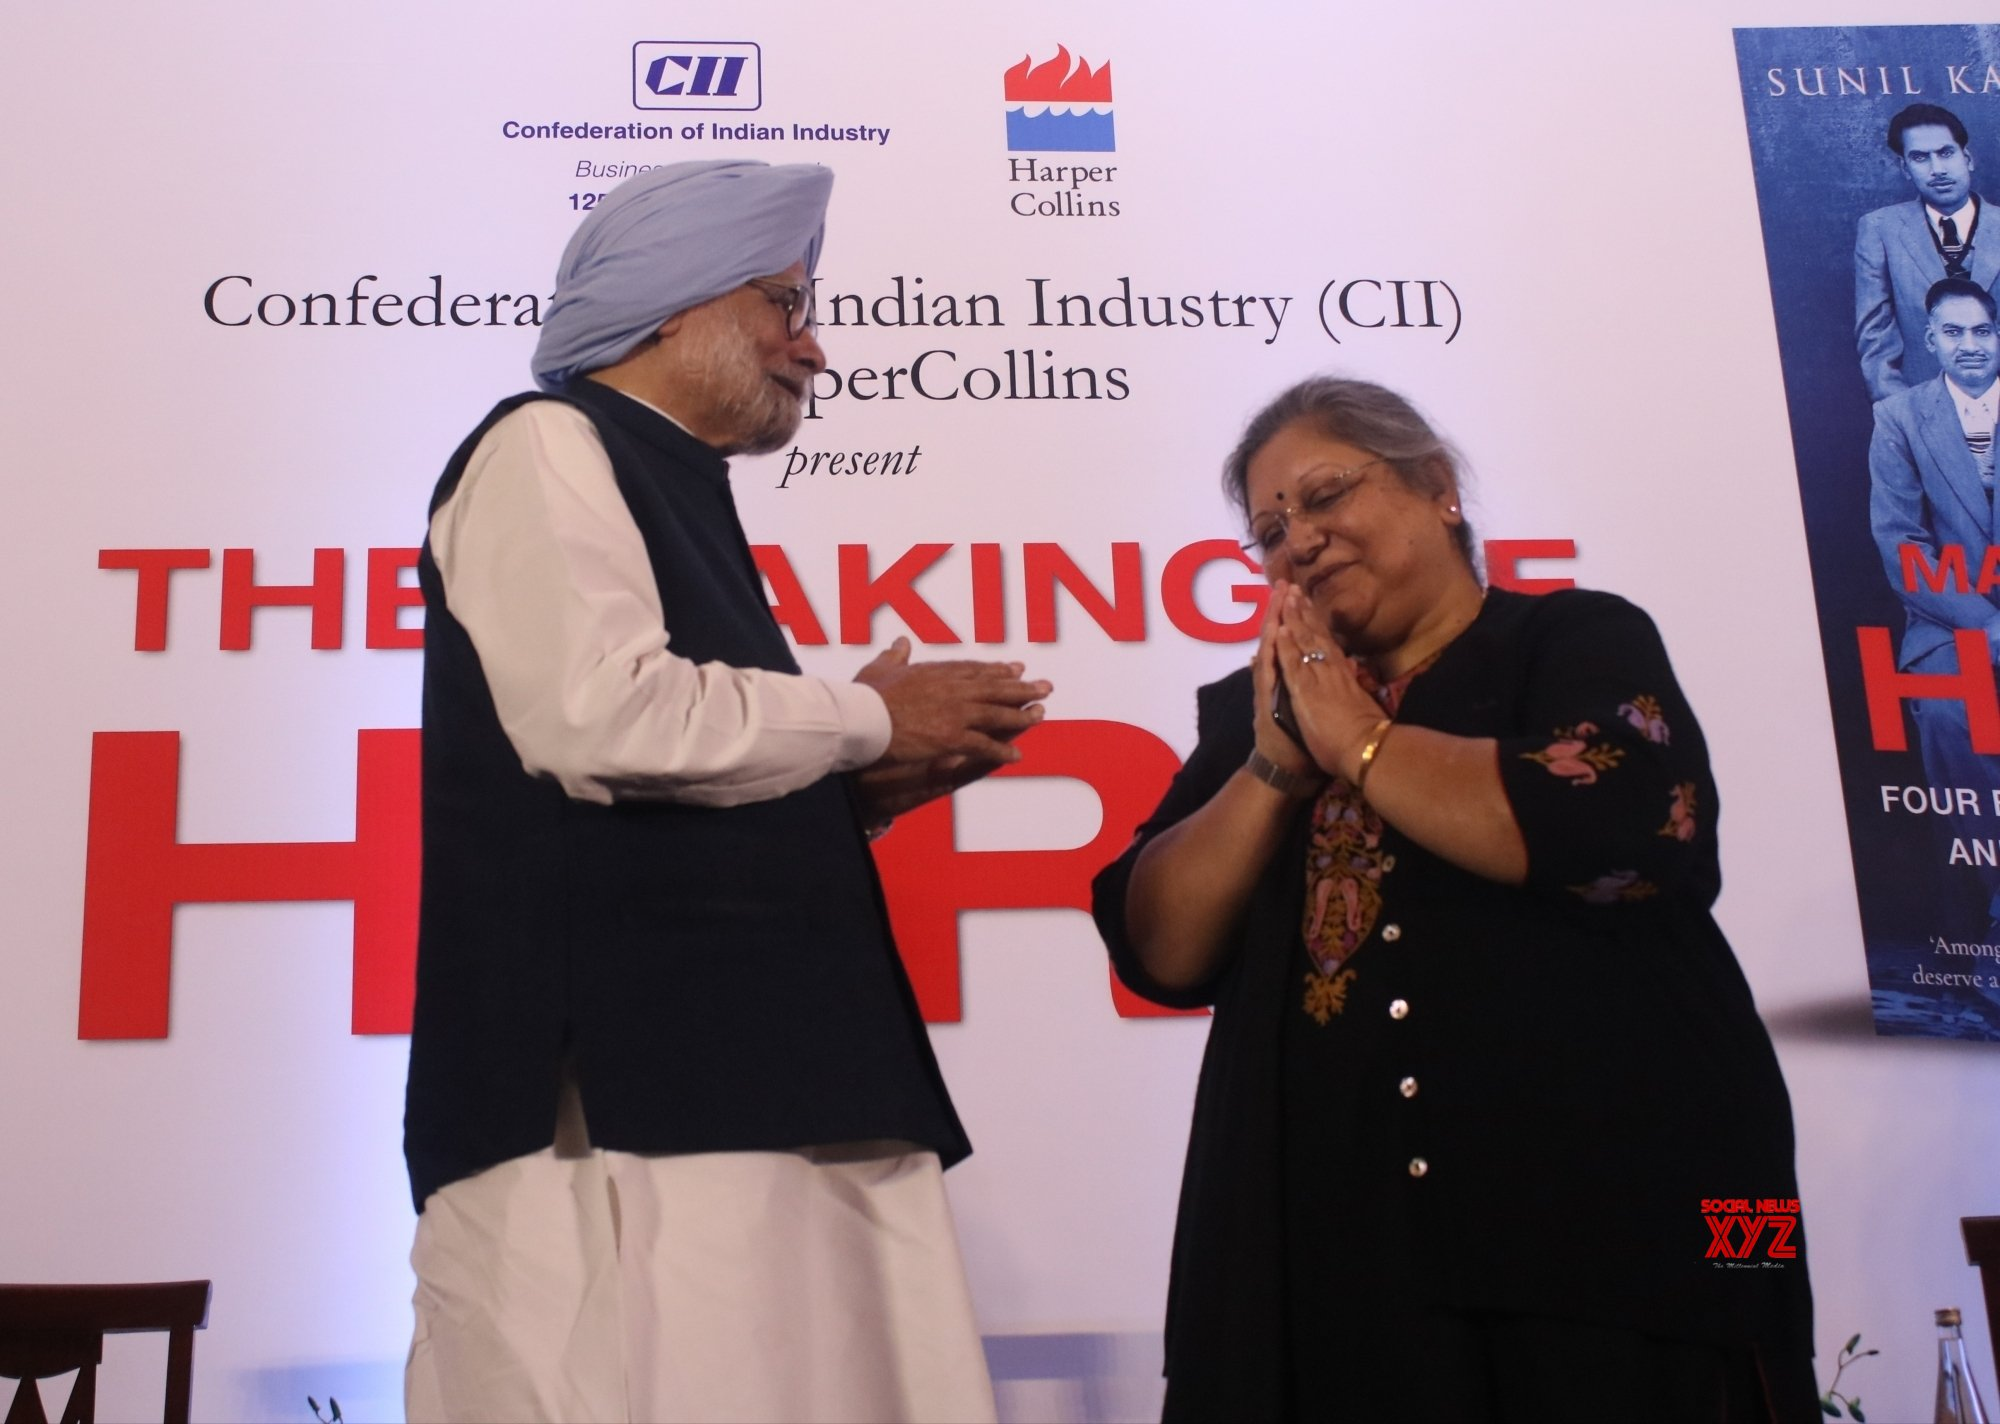 """New Delhi: Manmohan Singh at the launch of Sunil Kant Munjal's book """"The Making of Hero"""" #Gallery"""